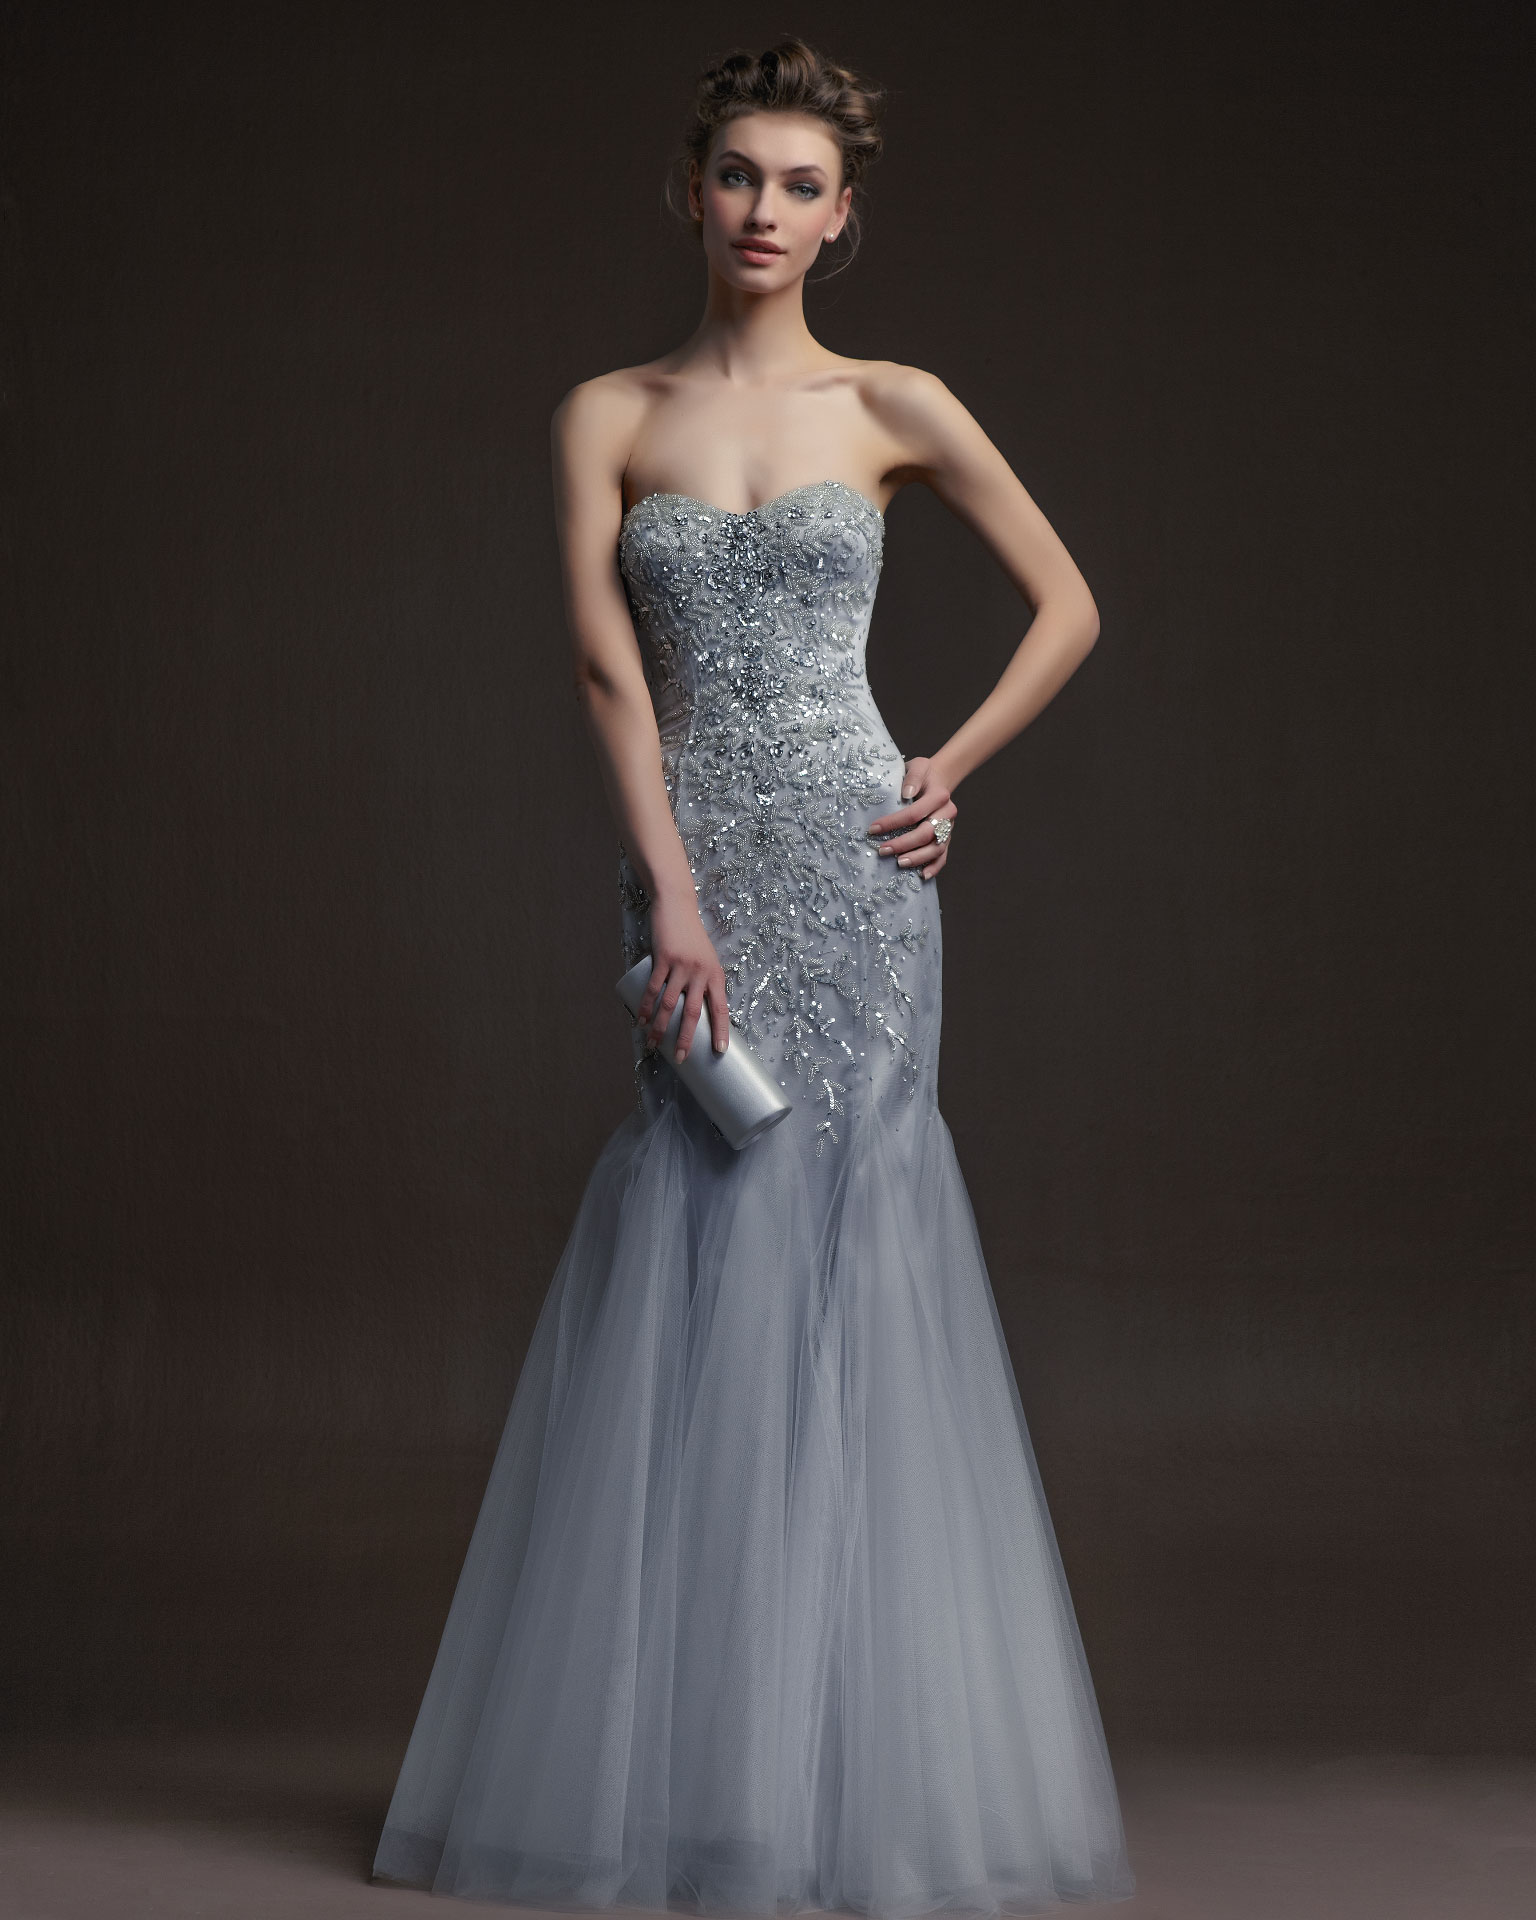 Gorgeous 2014 bridesmaid dresses from aire barcelona chic for Wedding dresses in barcelona spain